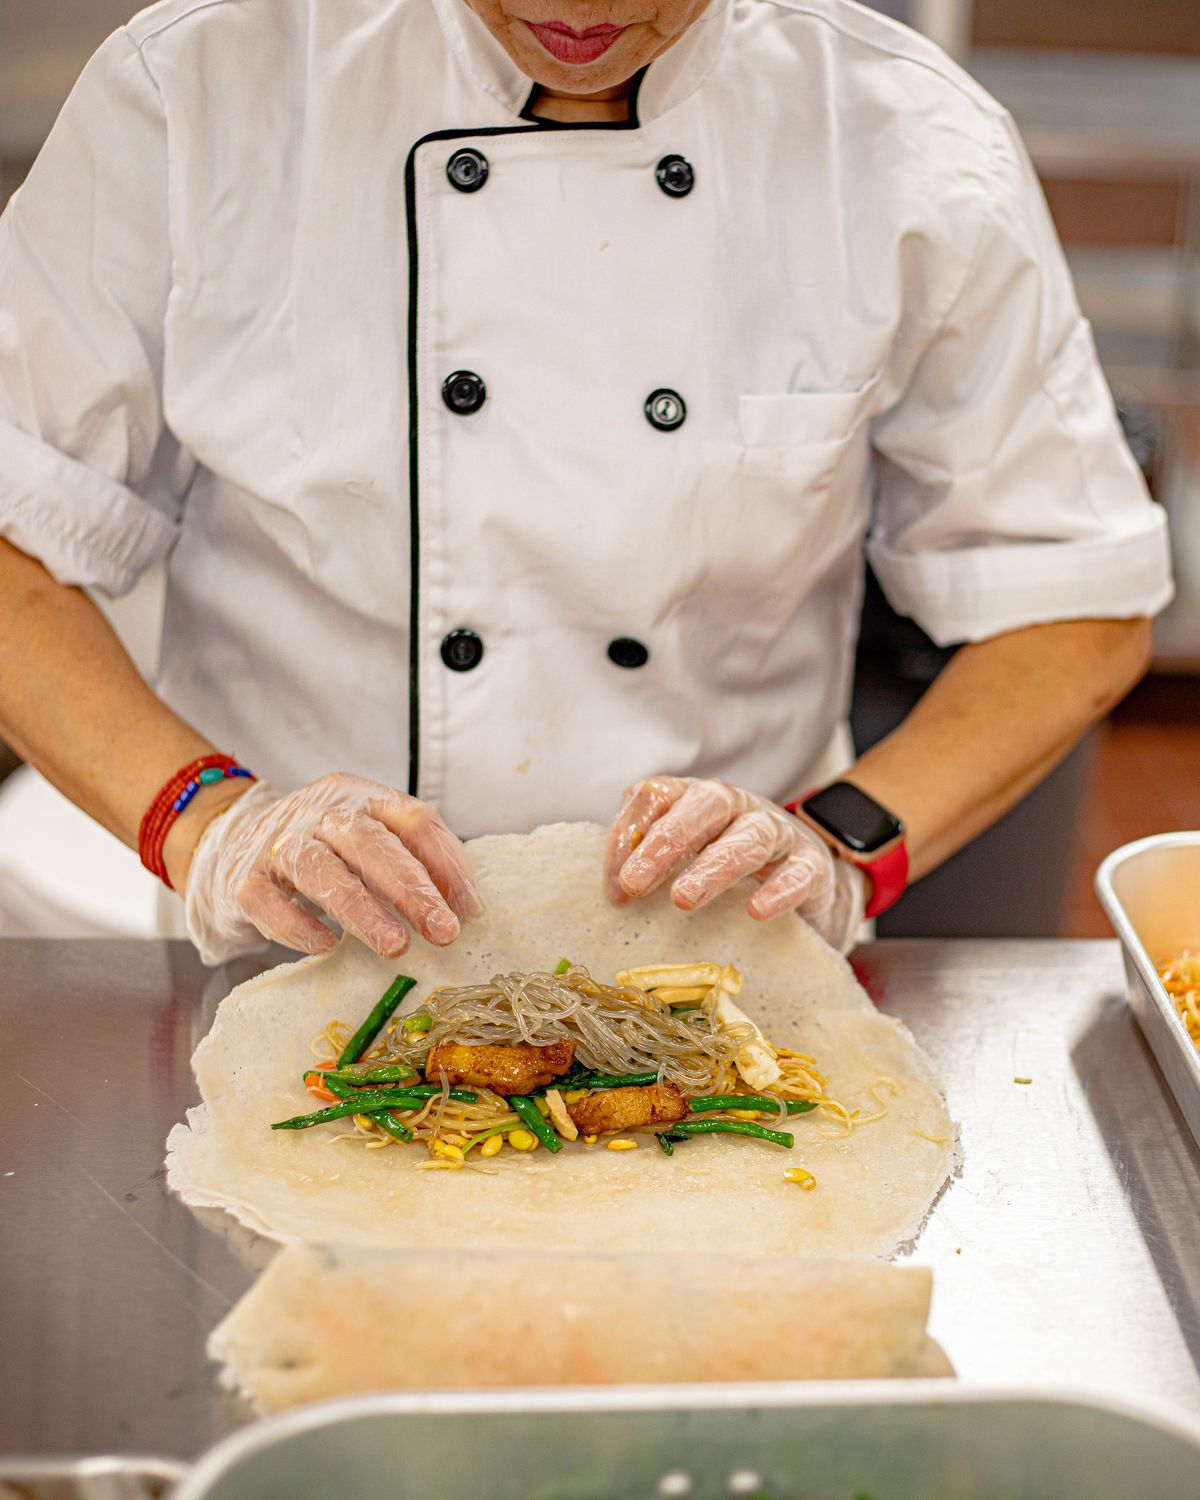 A woman in a chef's coat rolling meat and vegetables into a wrap